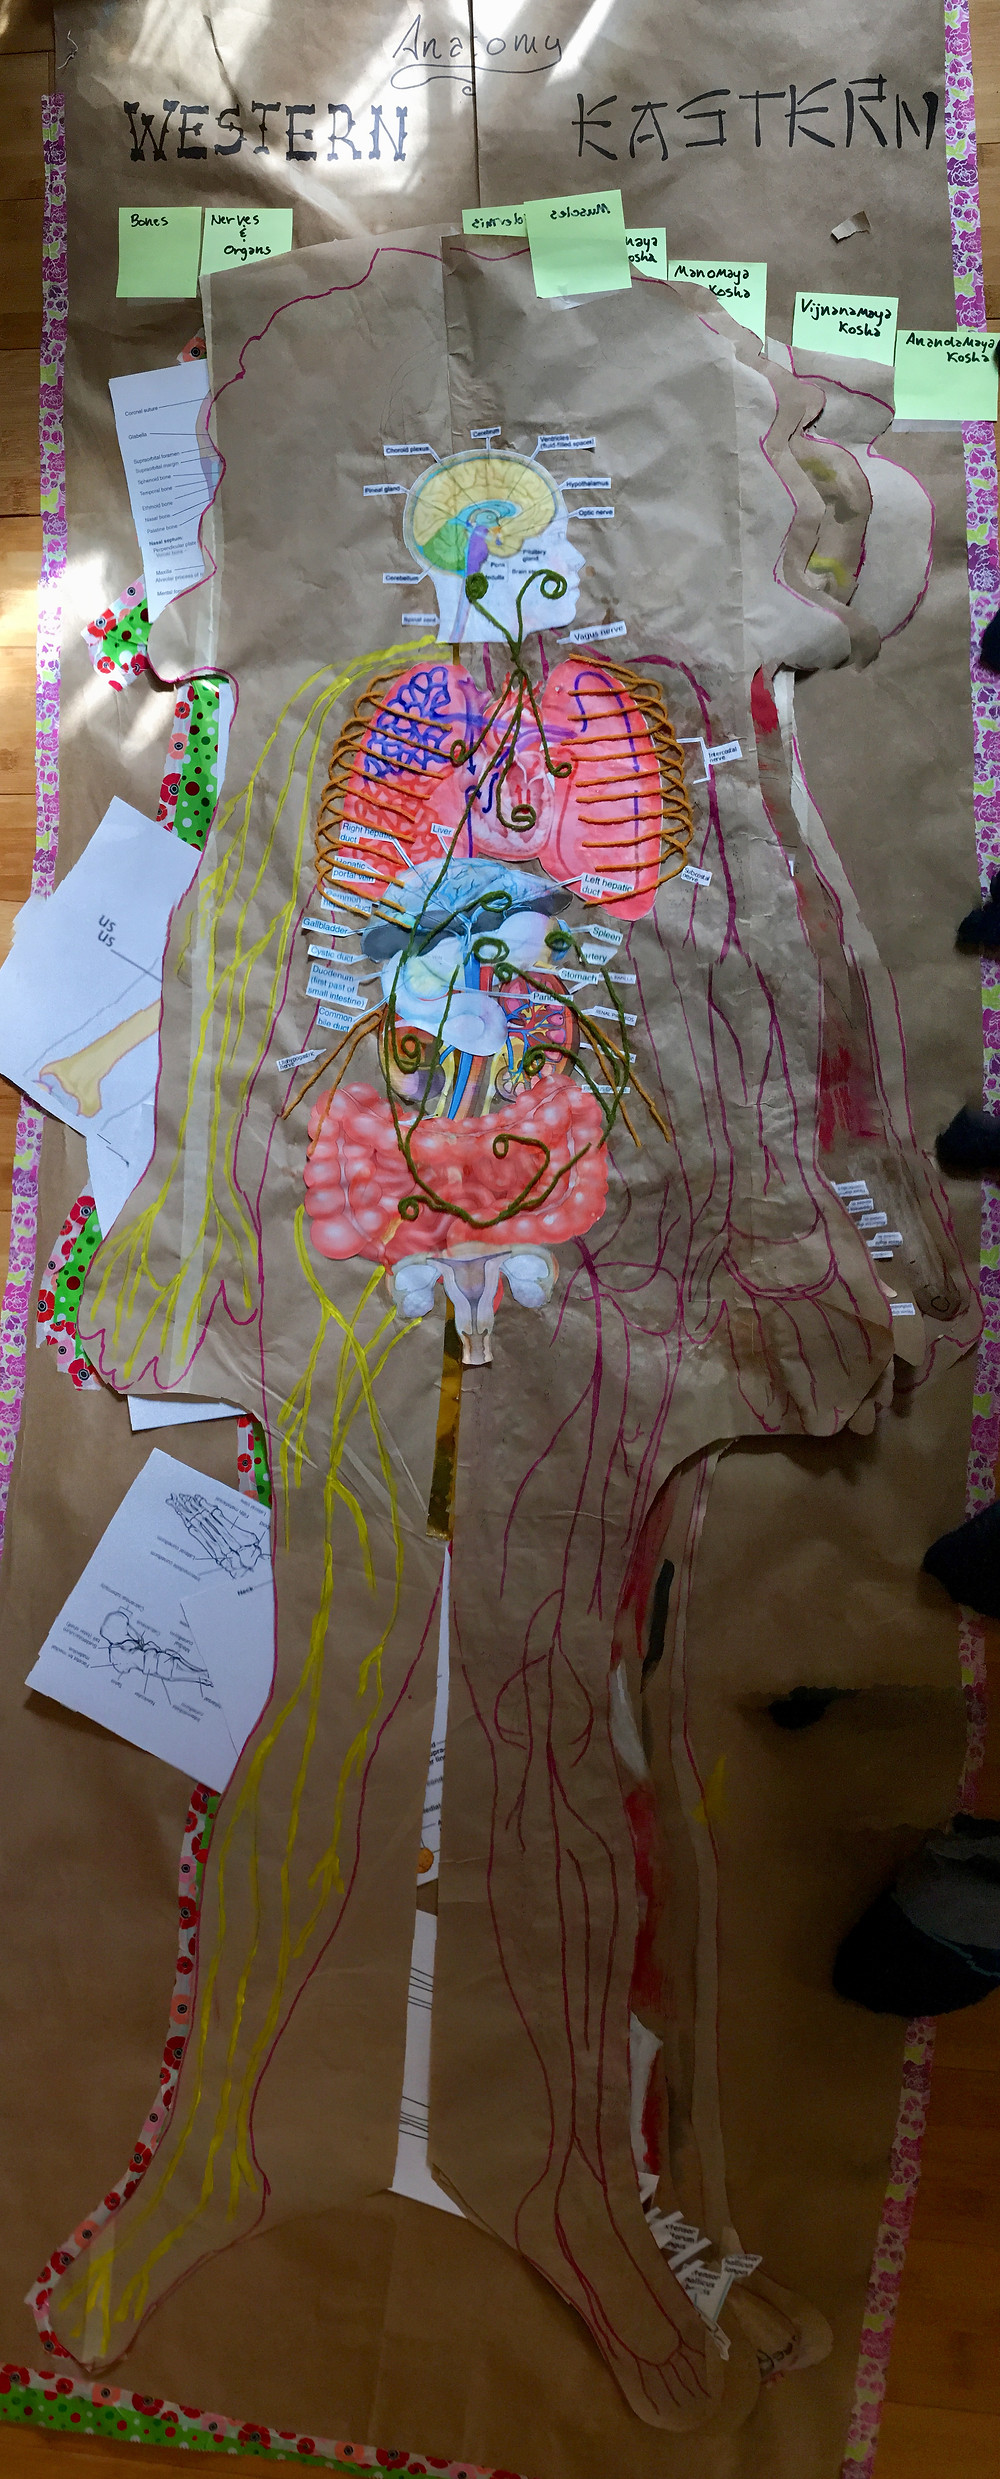 this layer of the paper figure is pasted images printed off Google and yellow nerves made of yarn or paint with the vagus nerve being green arteries are pink marker and veins are blue highlighter